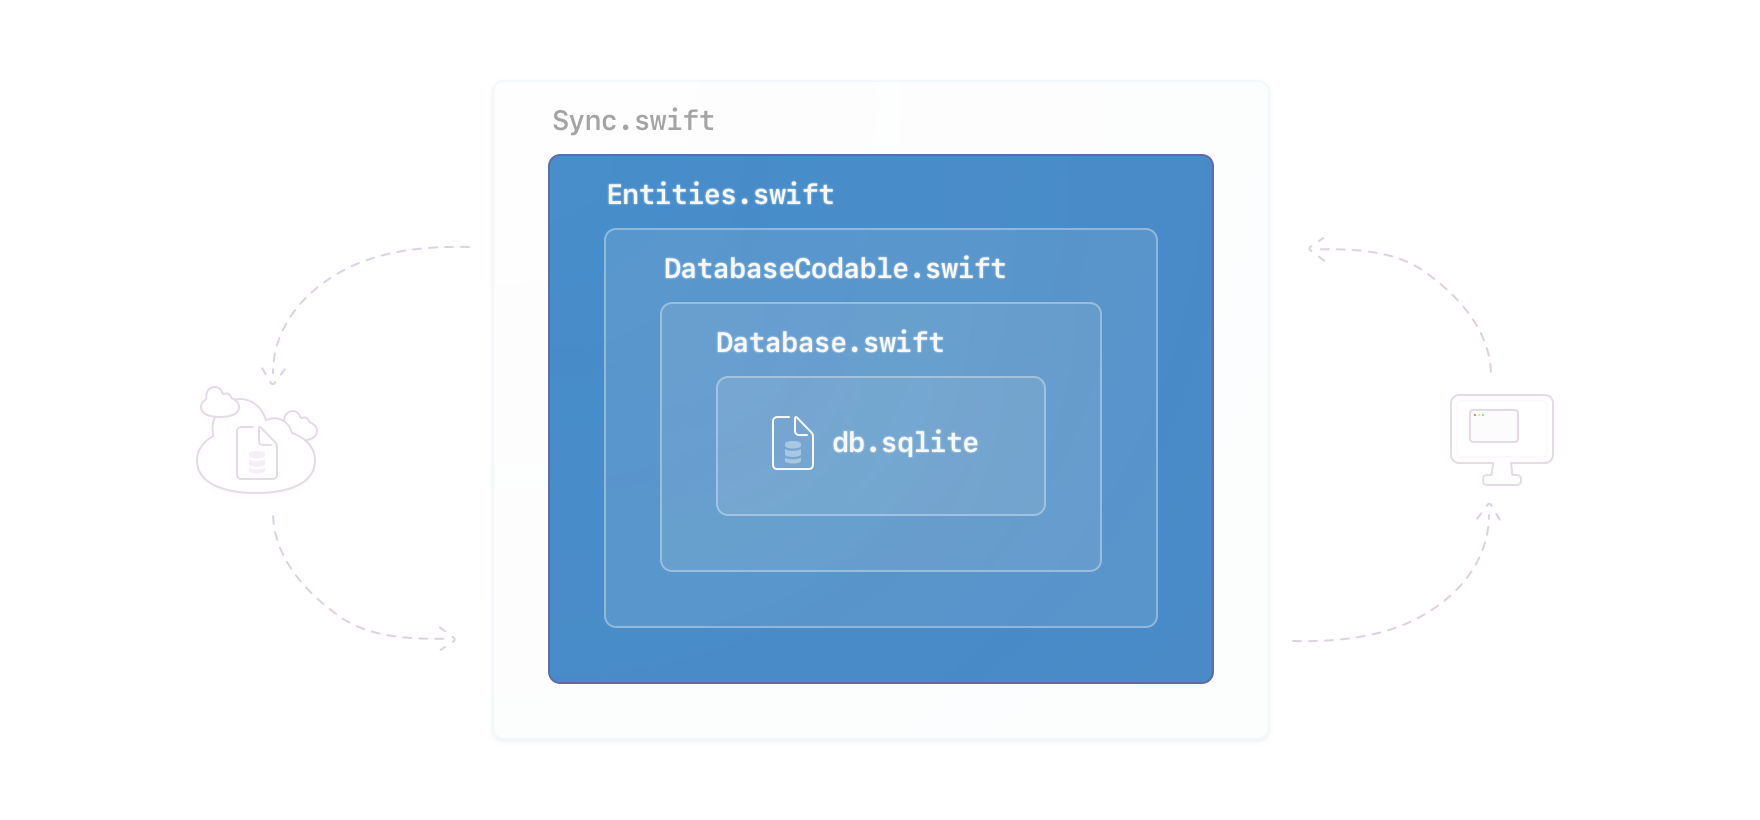 Illustration of a cloud, a computer's desktop with a window visible, and between a nested set of squares representing code concepts (from outside, in) listing Sync.swift, Entities.swift, DatabaseCodable.swift, Database.swift, and db.sqlite representing the local database file on a device with Entities.swift, DatabaseCodable.swift, Database.swift and db.sqlite highlighted